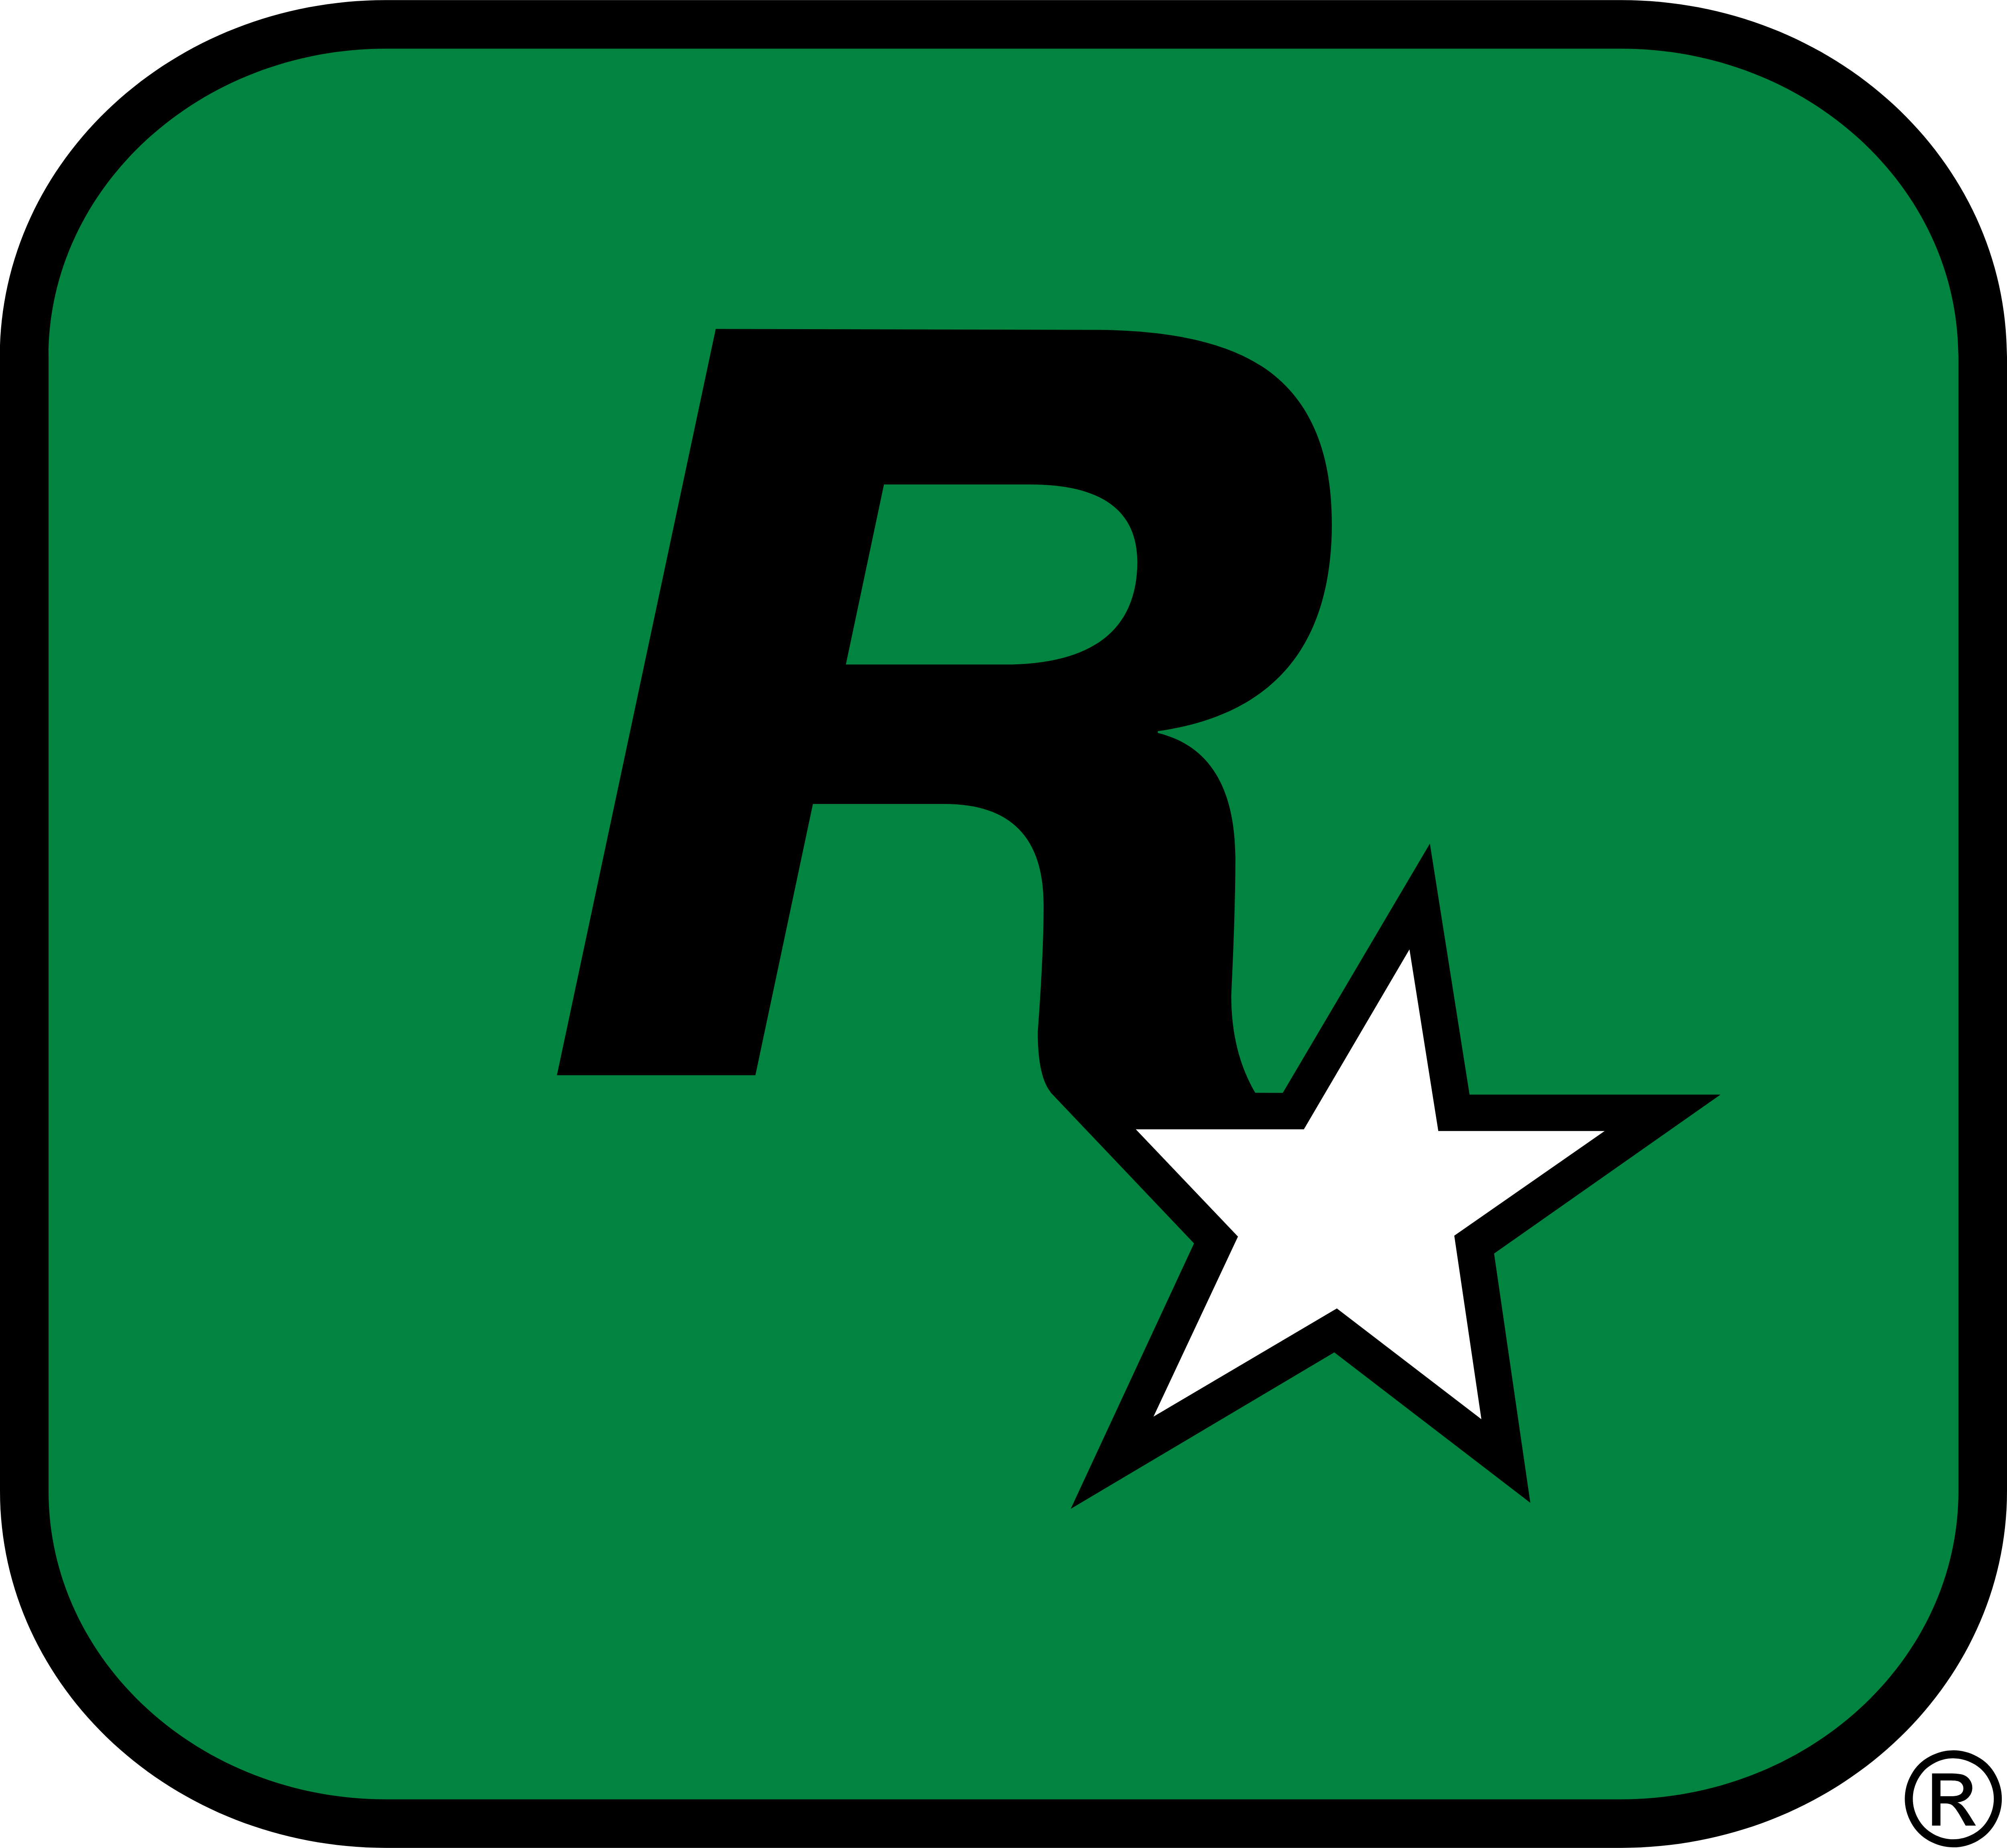 rockstar logos download